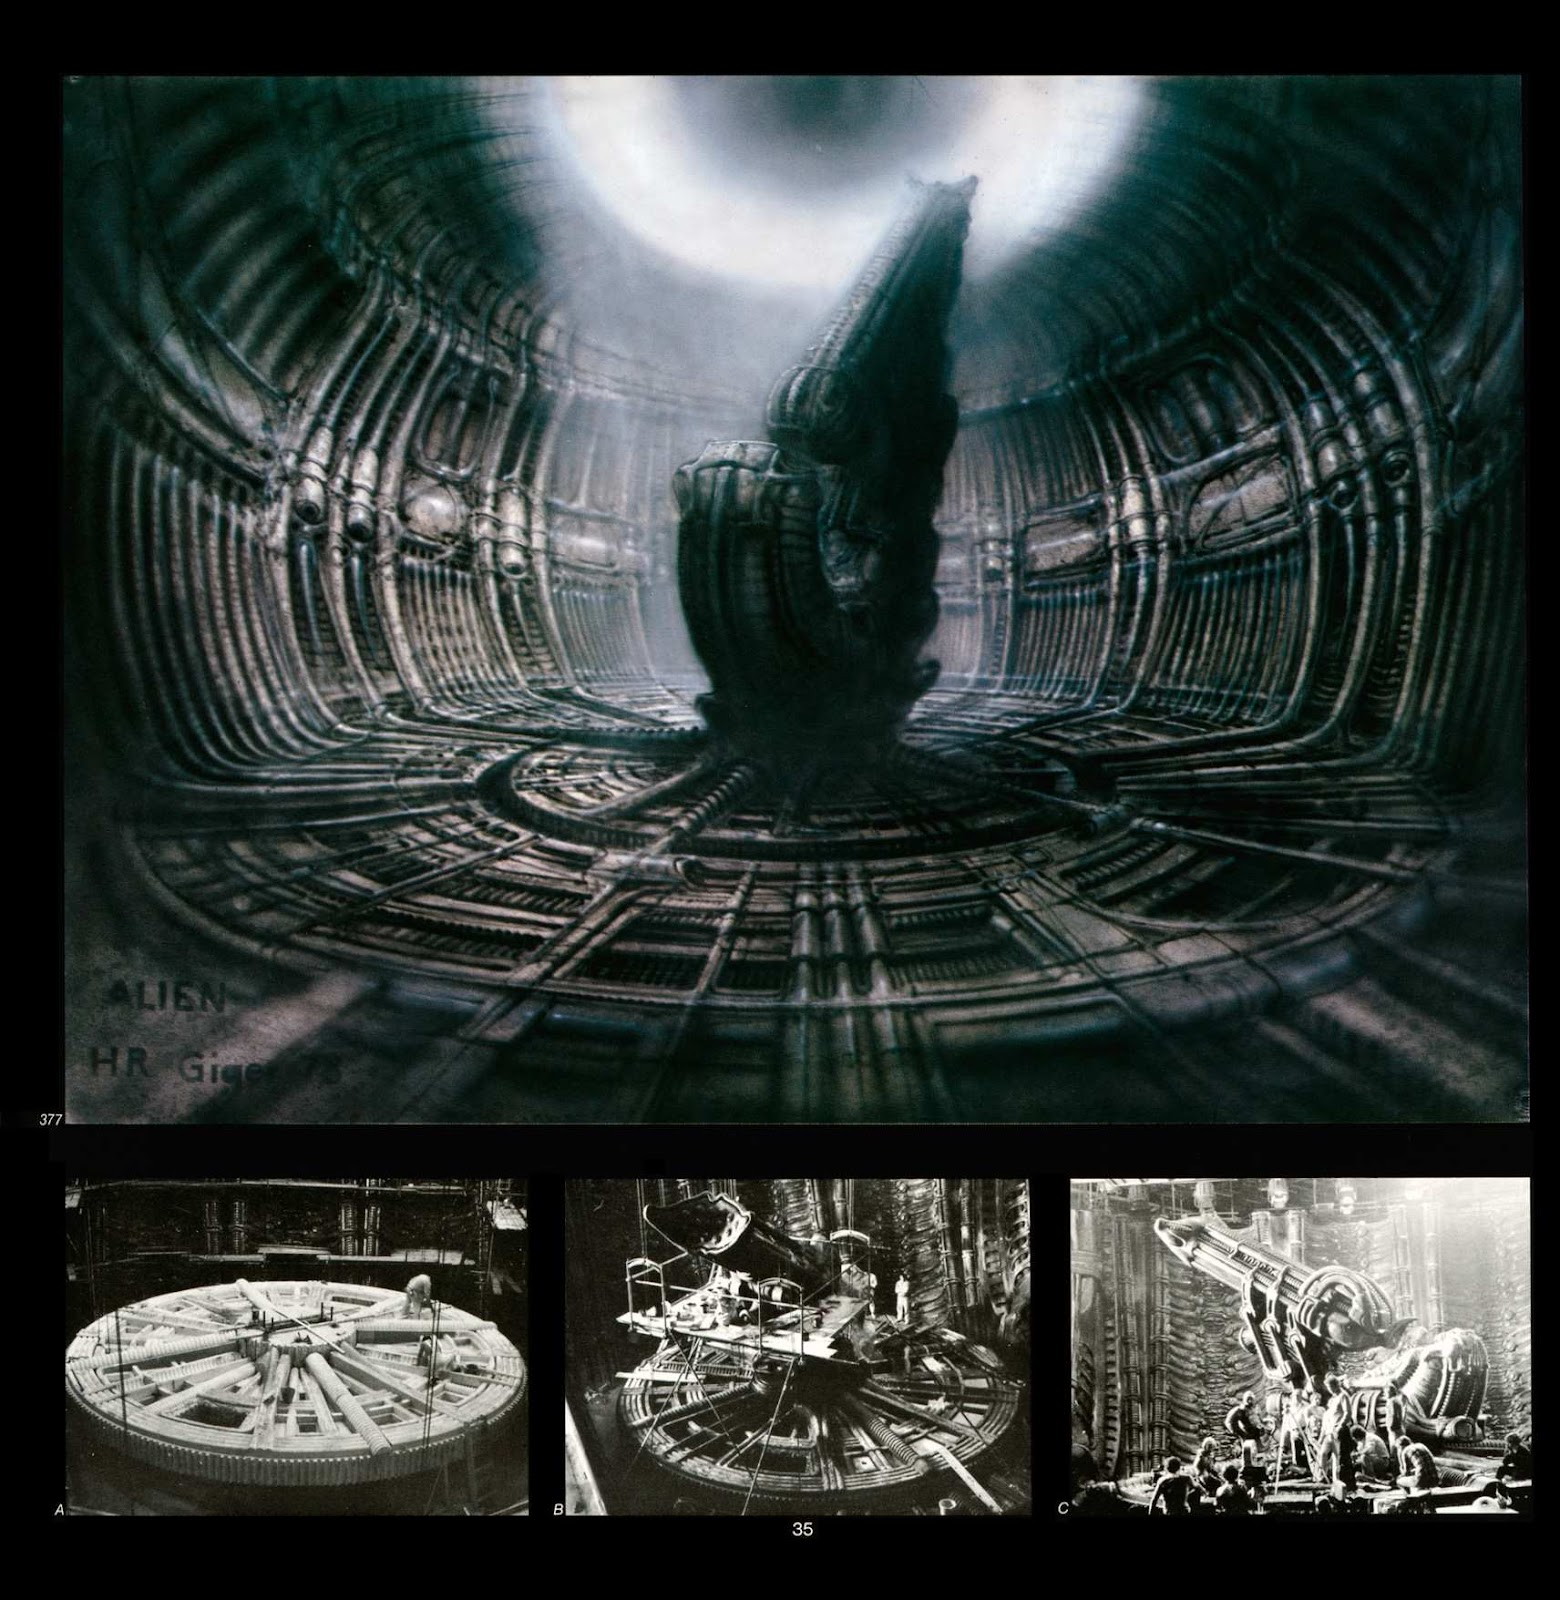 Read online Giger's Alien comic -  Issue # TPB - 37